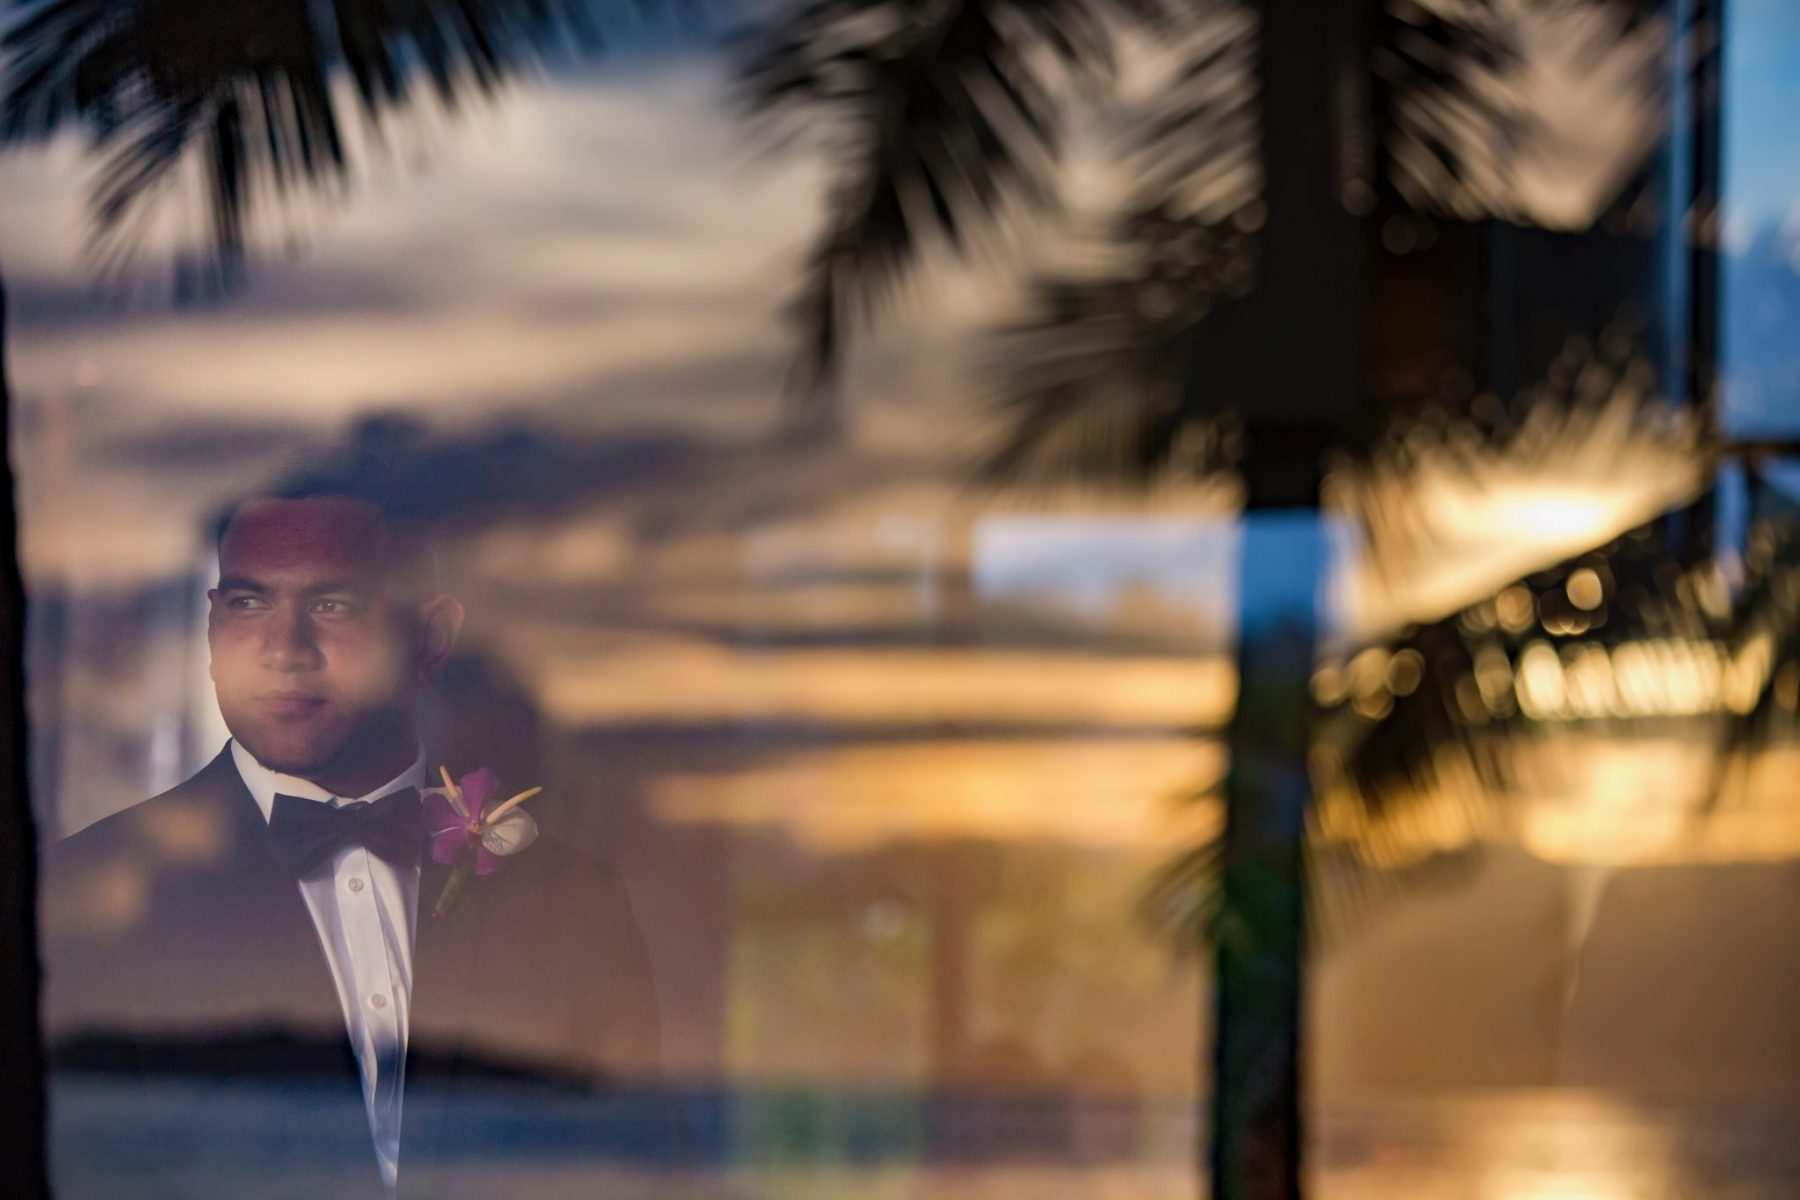 Fiji Wedding Cinematography - Header Image